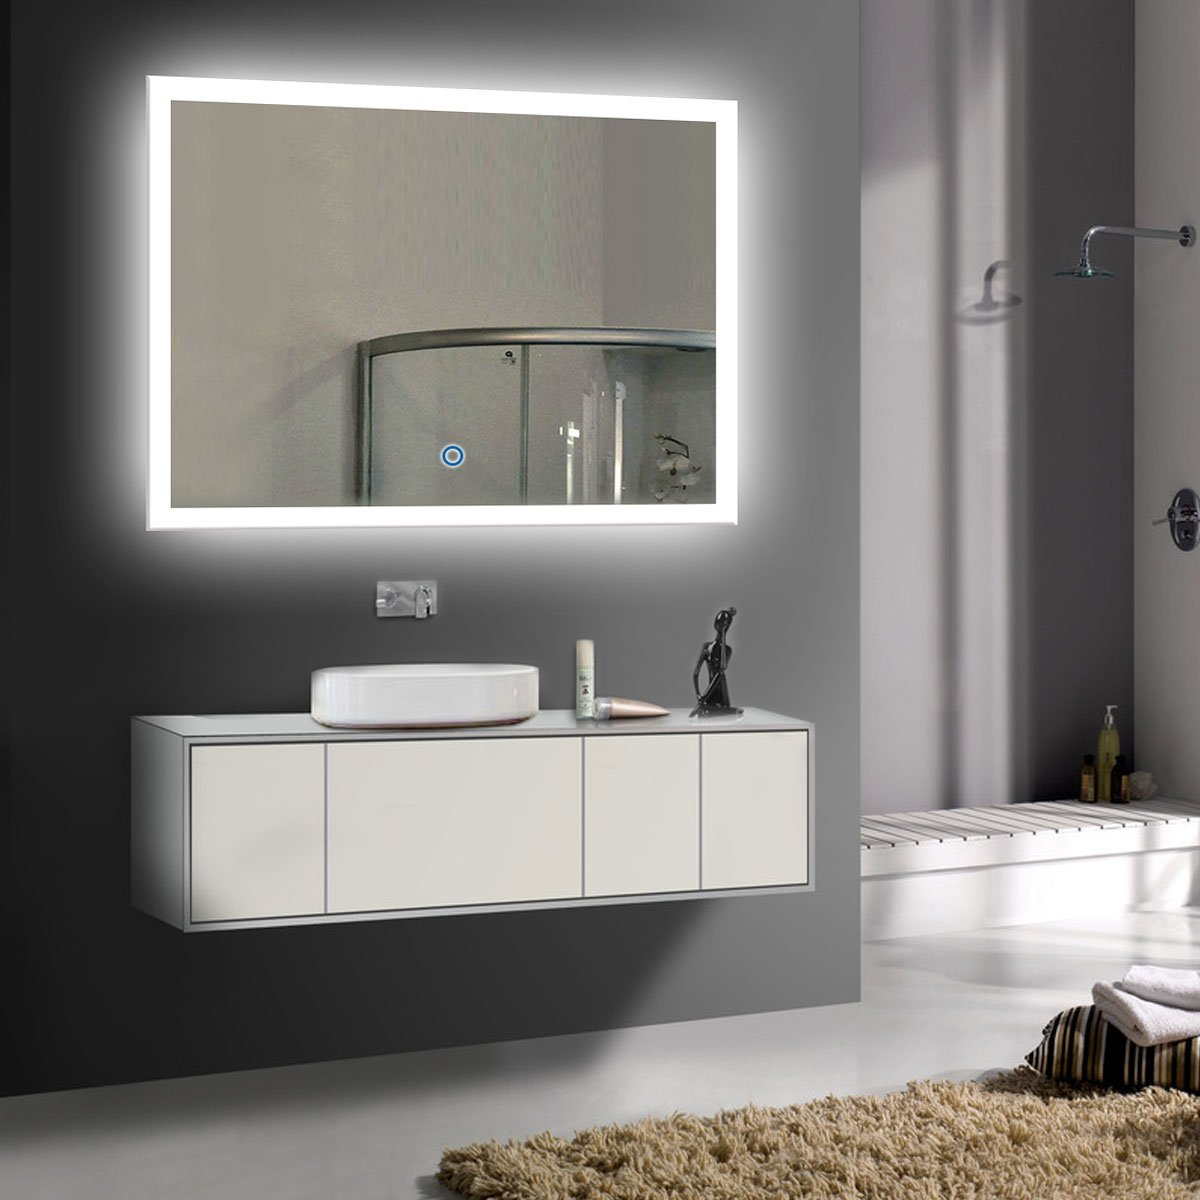 Amazon Com D Hyh Horizontal Rectangle Illuminated Bathroom Wall